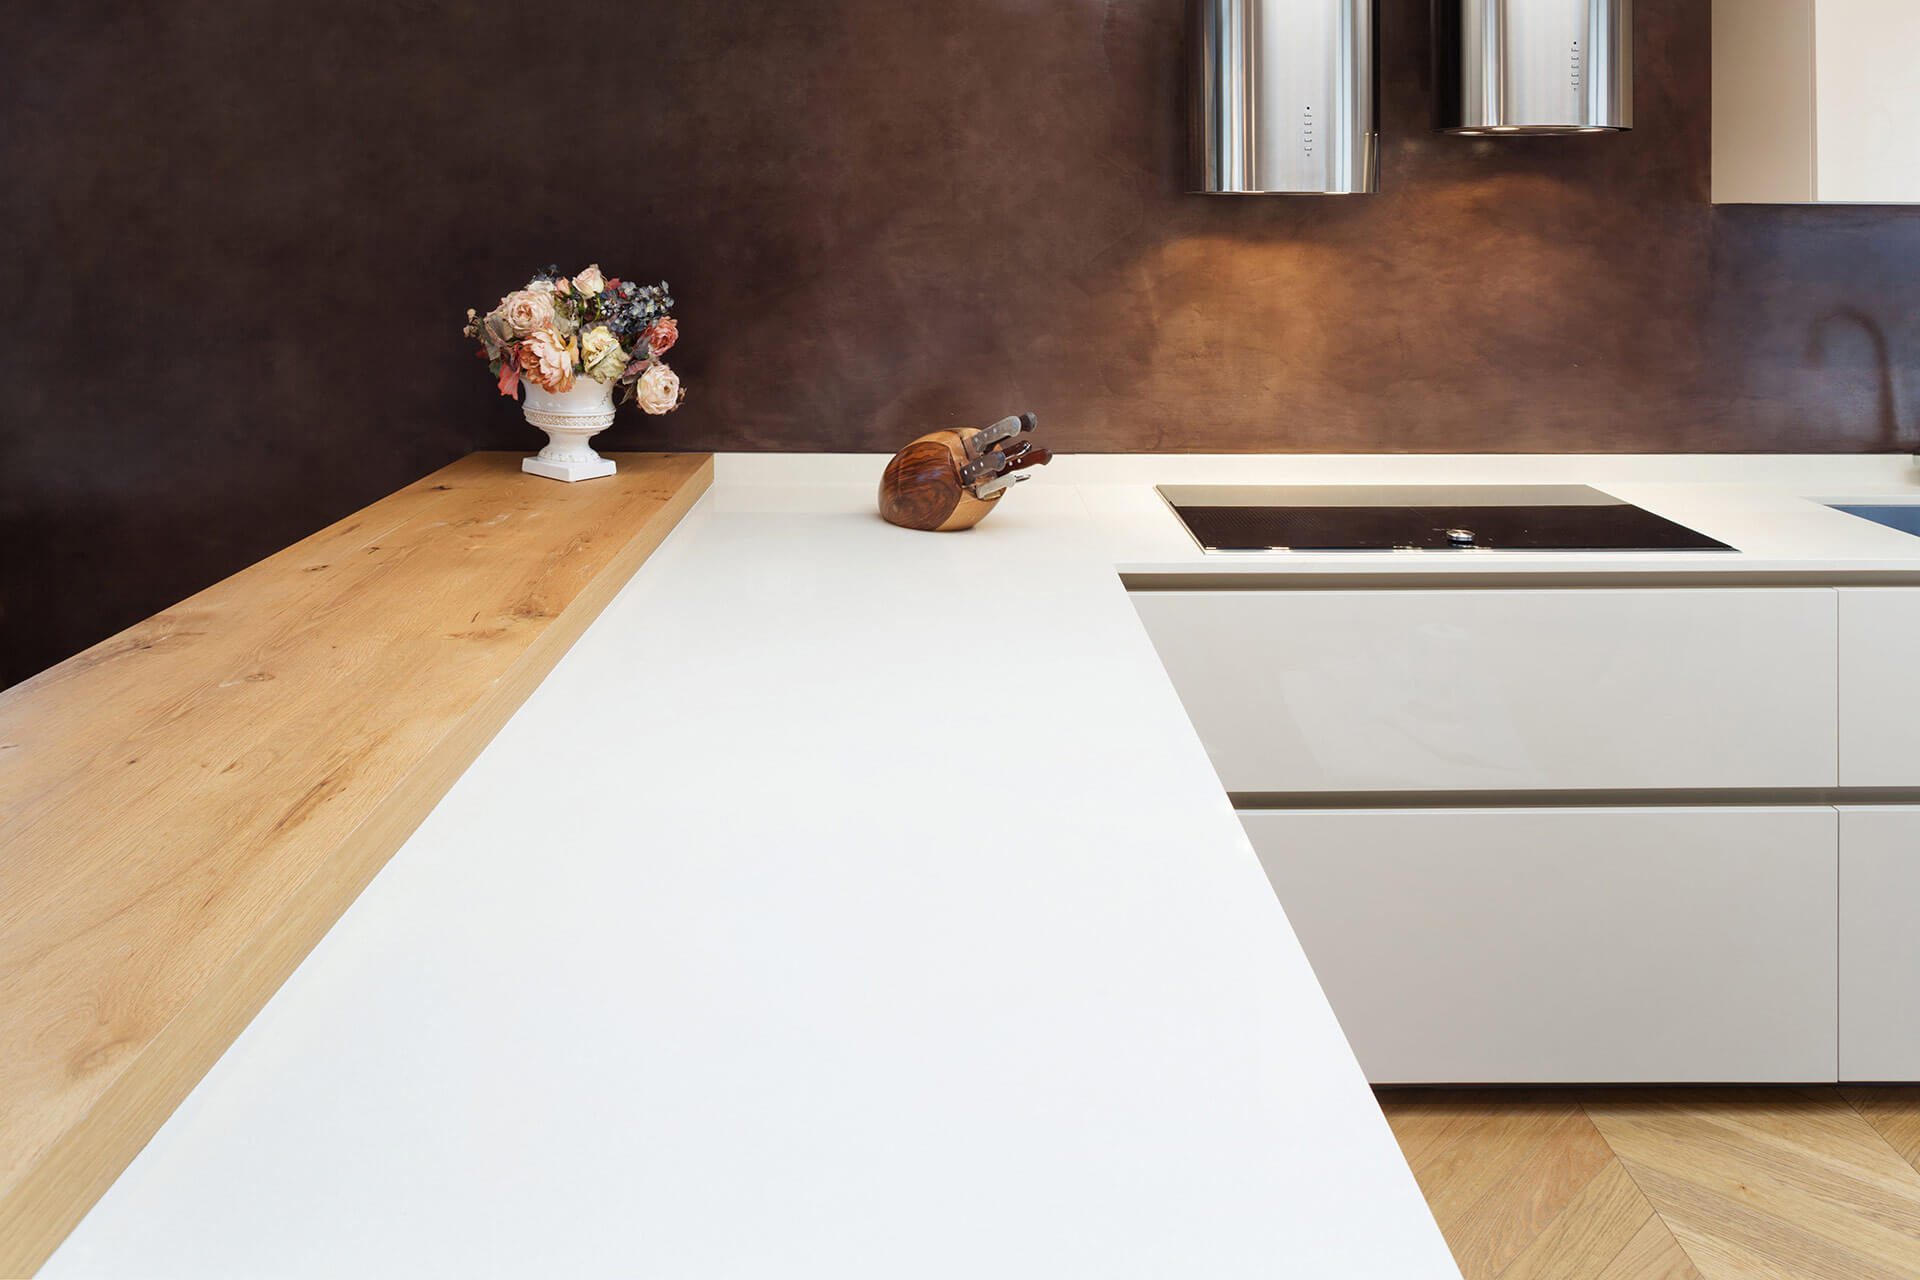 Built-in Kitchen Cupboard & Store Units